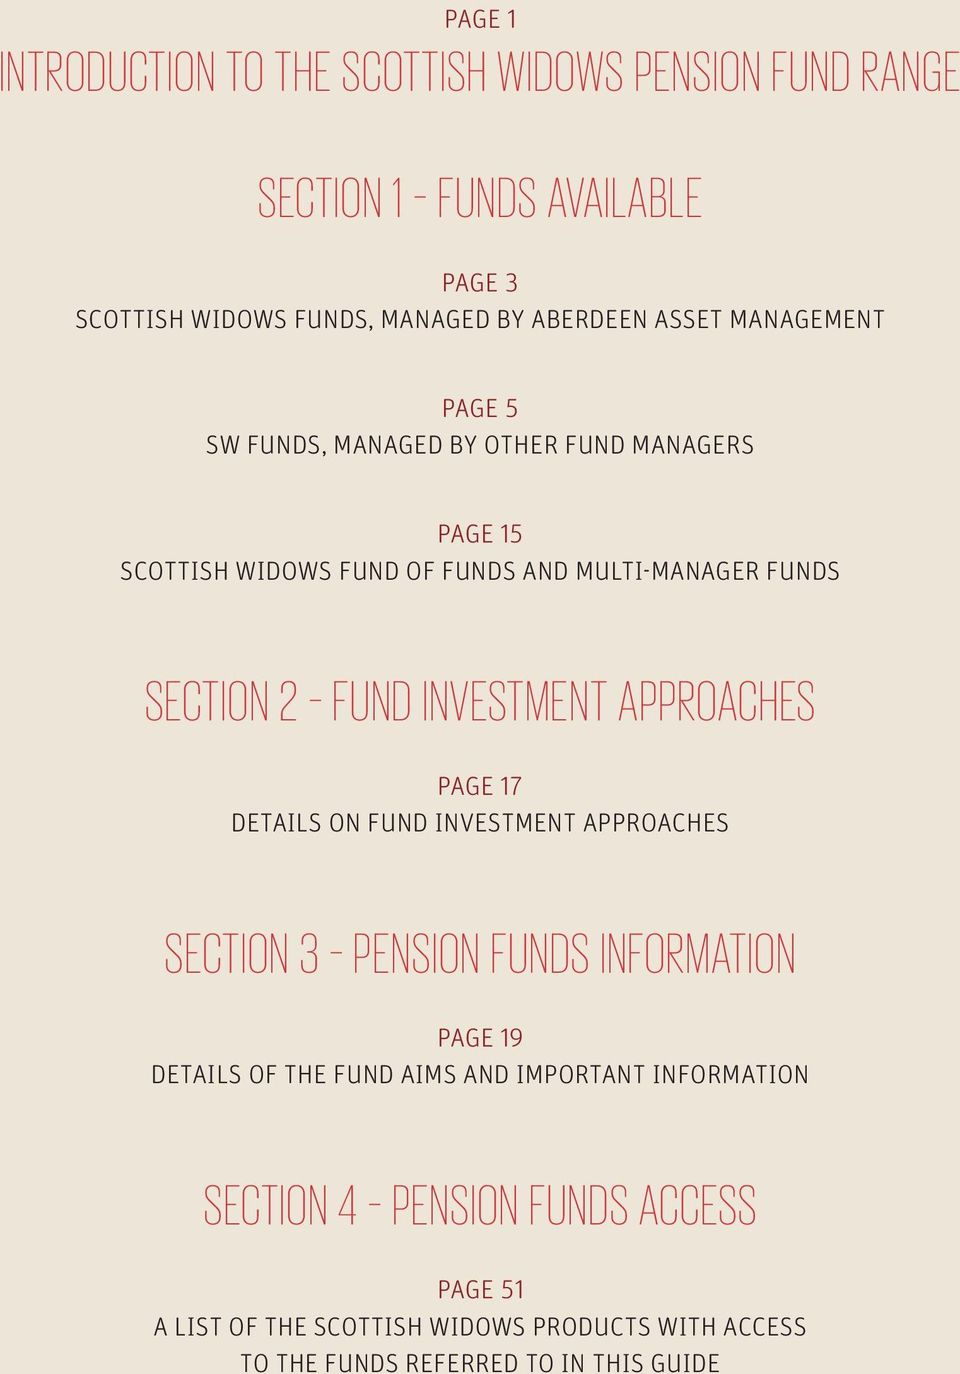 INVESTMENT APPROACHES PAGE 17 DETAILS ON FUND INVESTMENT APPROACHES SECTION 3 PENSION FUNDS INFORMATION PAGE 19 DETAILS OF THE FUND AIMS AND